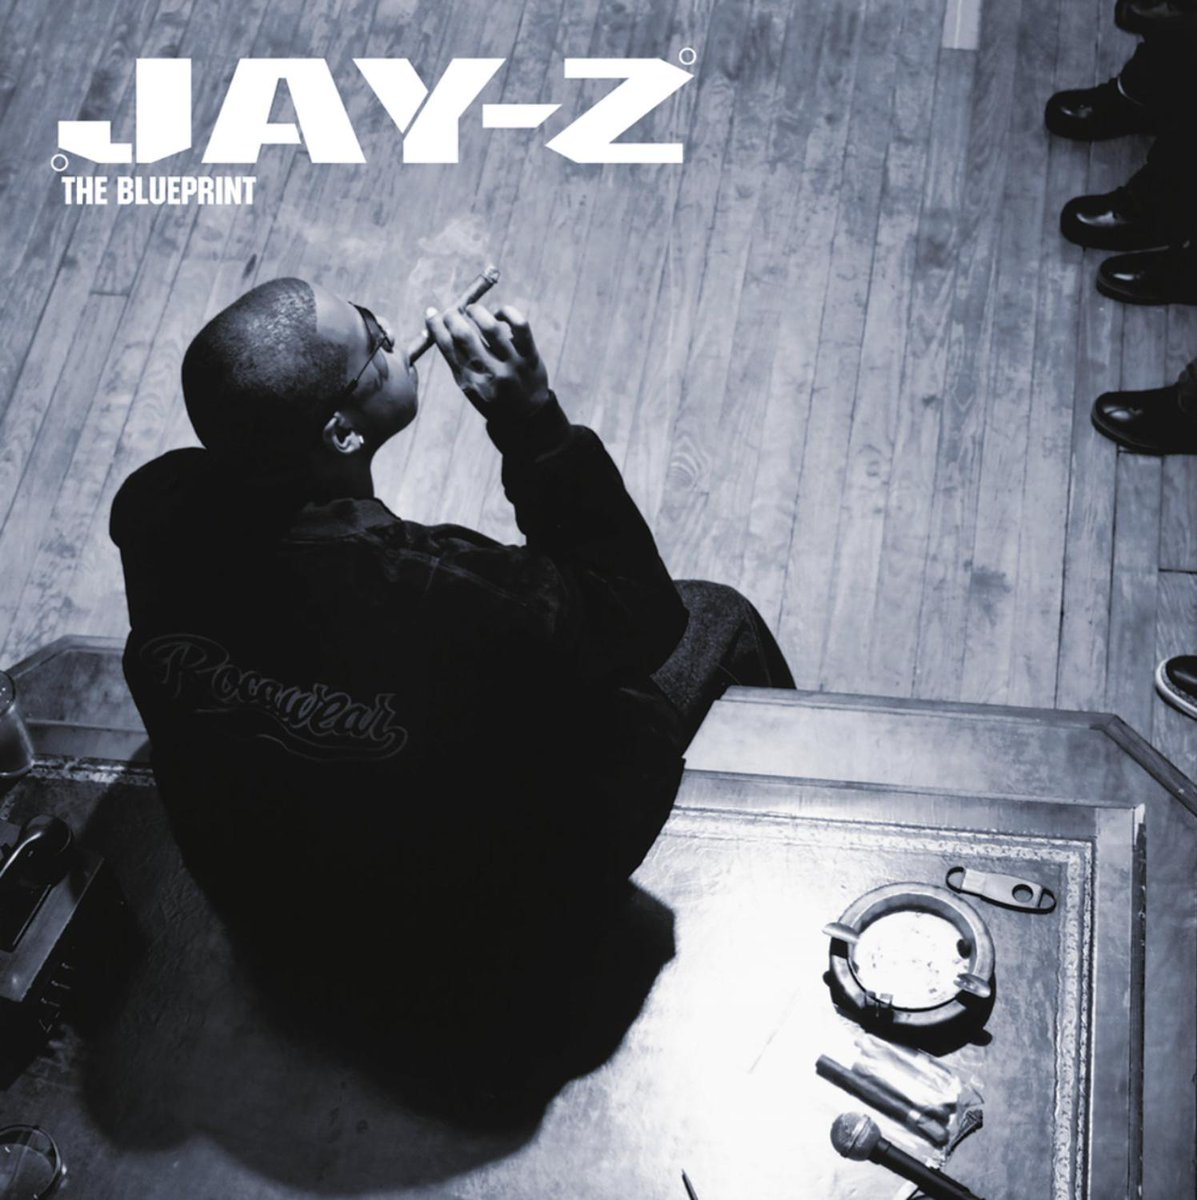 On this day in #RocHistory, #JAYZ's #TheBlueprint is being inducted into the #NationalRecordingRegistry of the @librarycongress as an aural treasure worthy of preservation because of it's cultural, historic and aesthetic importance to the nation's recorded sound heritage.